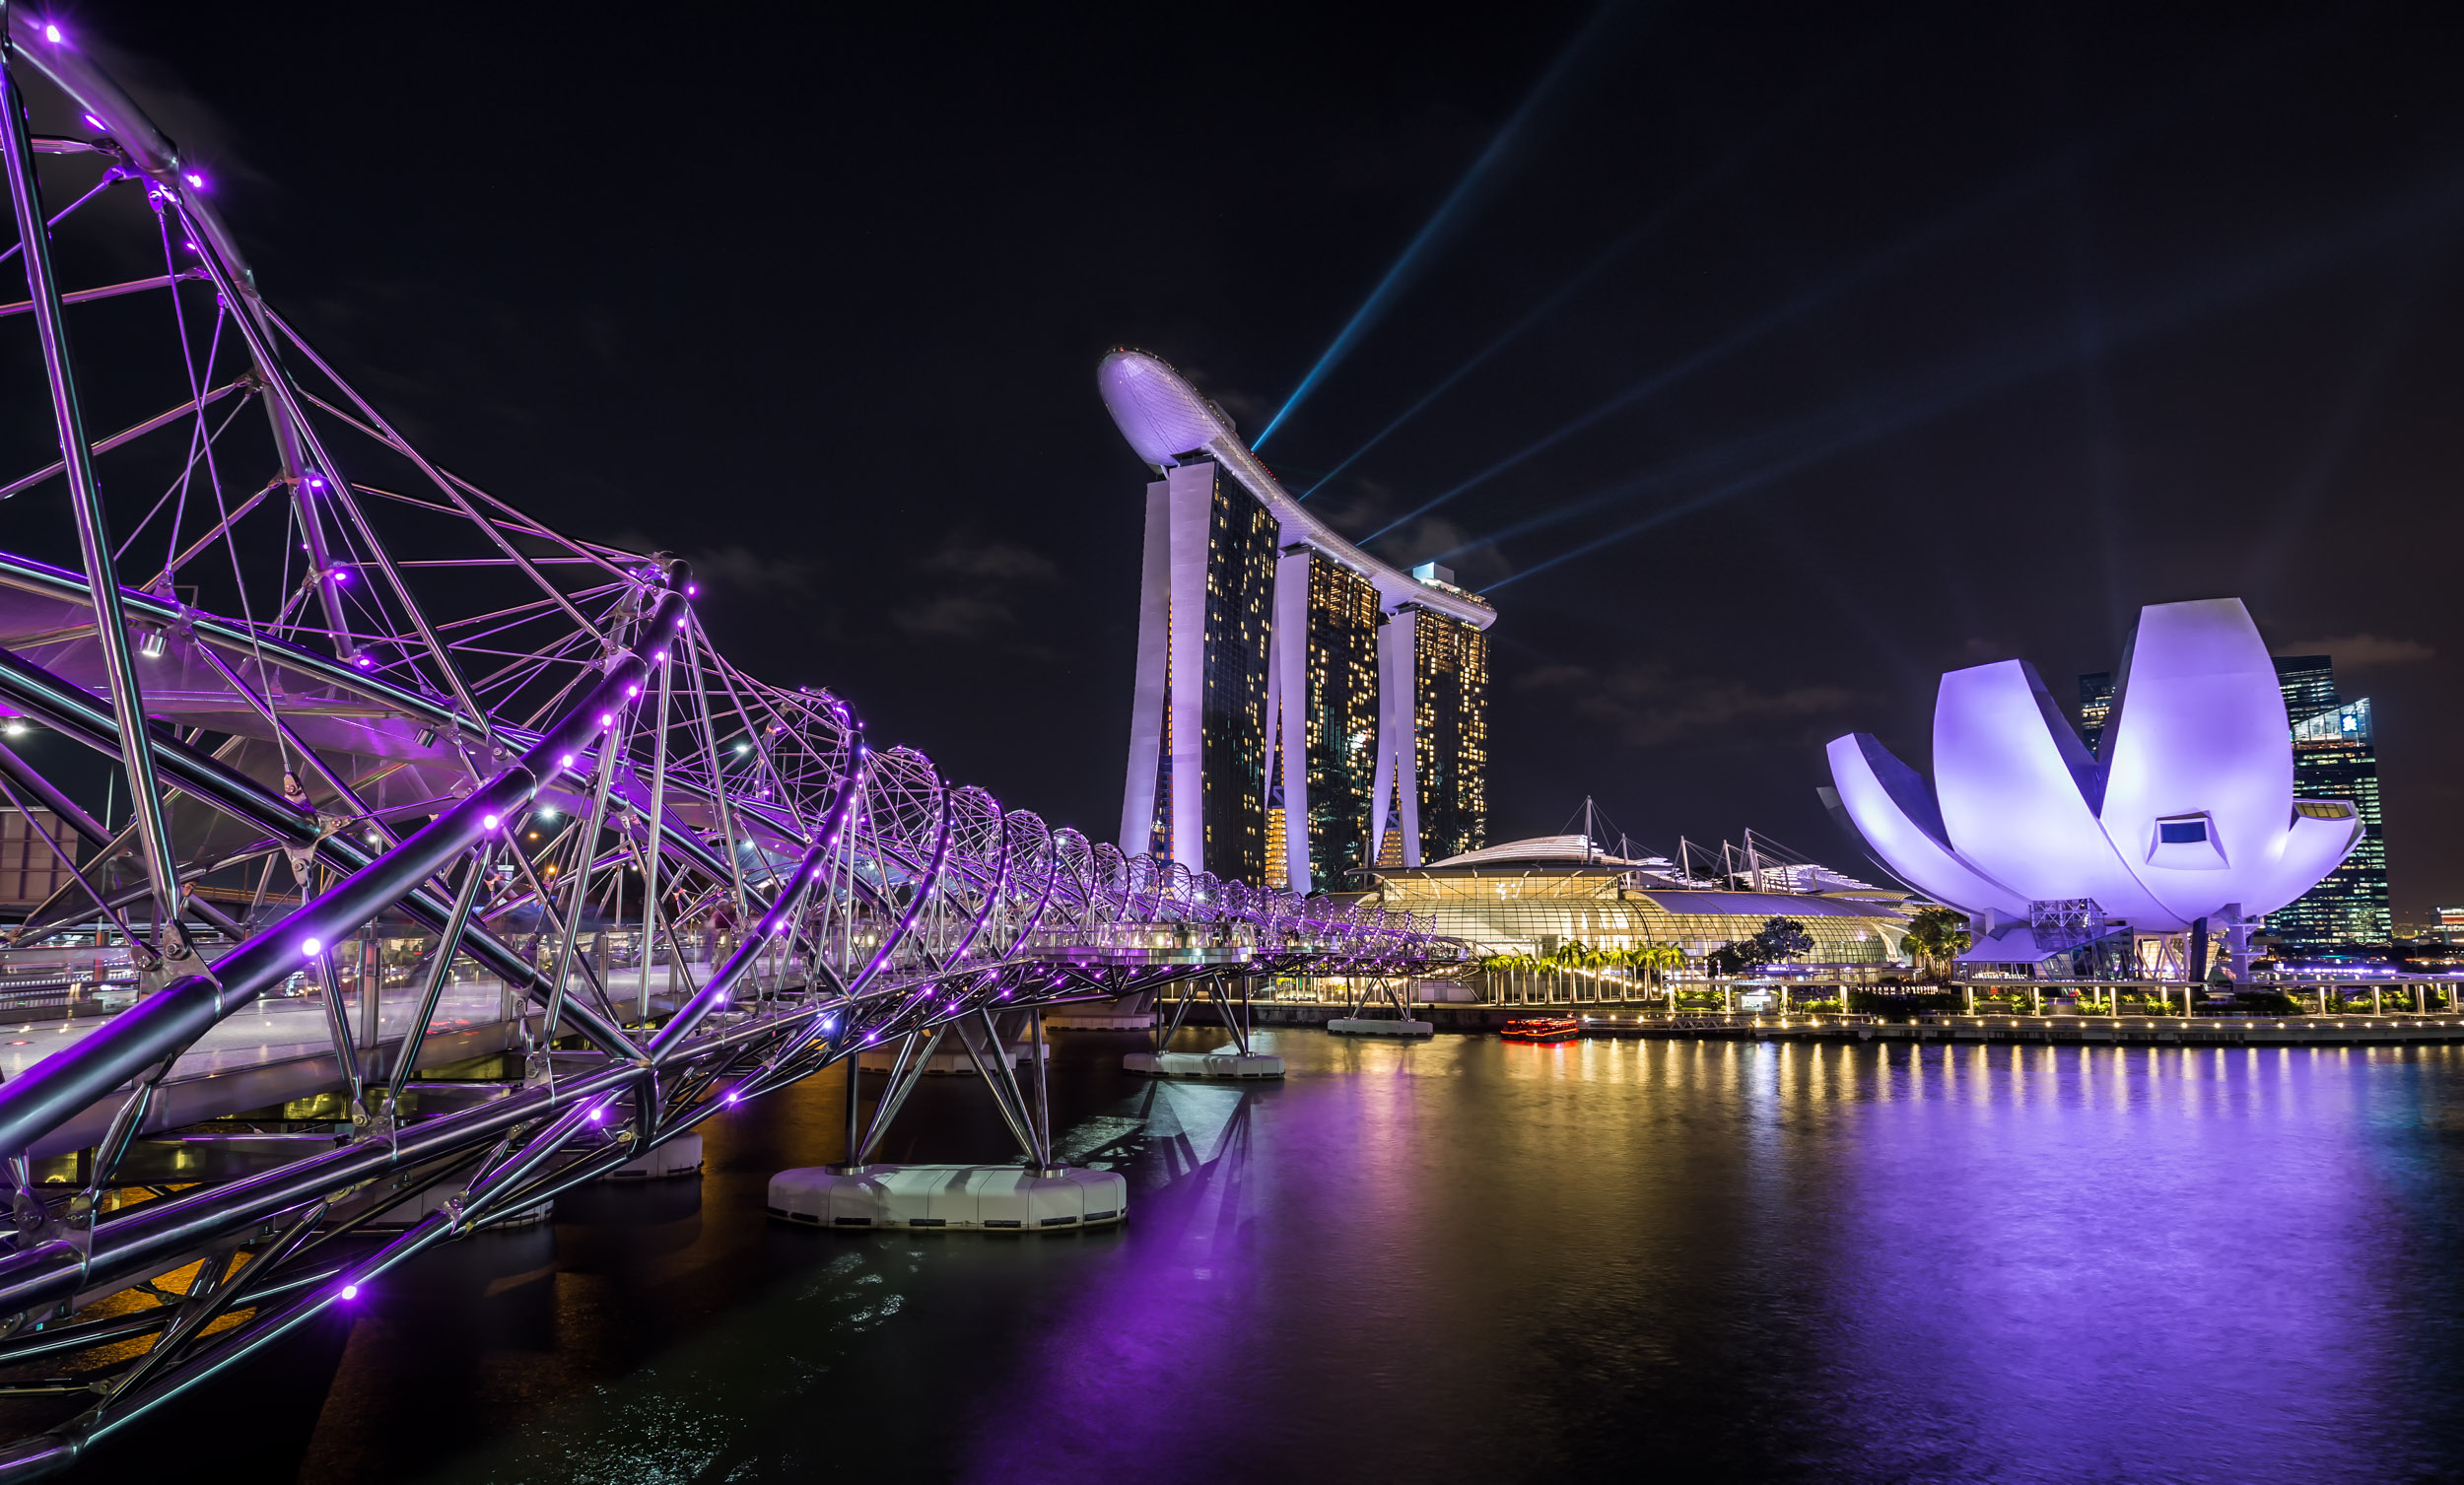 Marina Bay Sands at Night - Singapur - City Photography